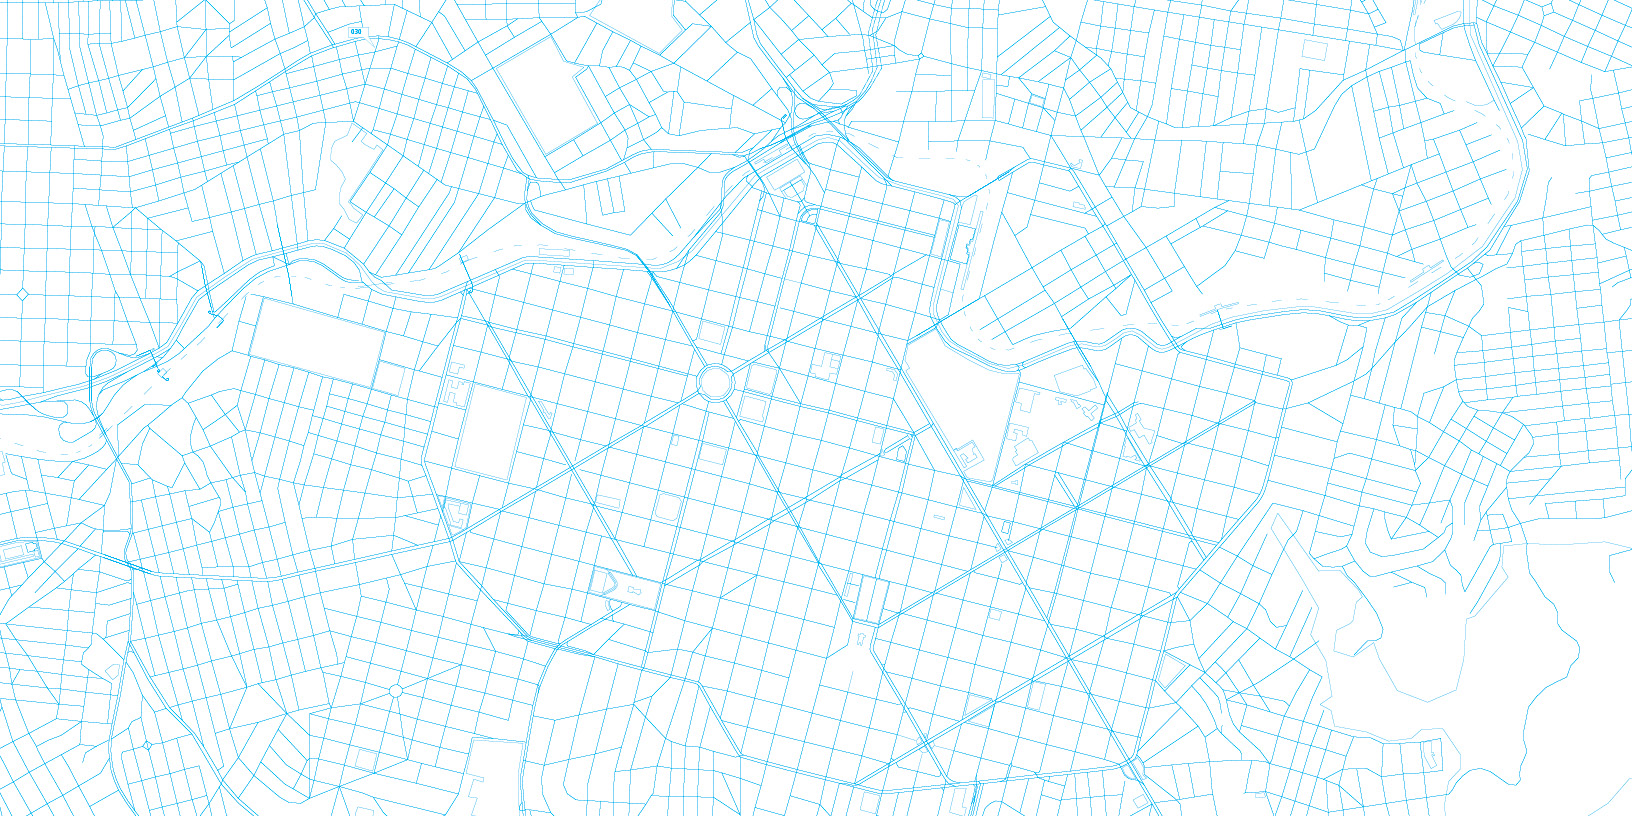 UnGRIDDED CITIES COLORING BOOK16.jpg